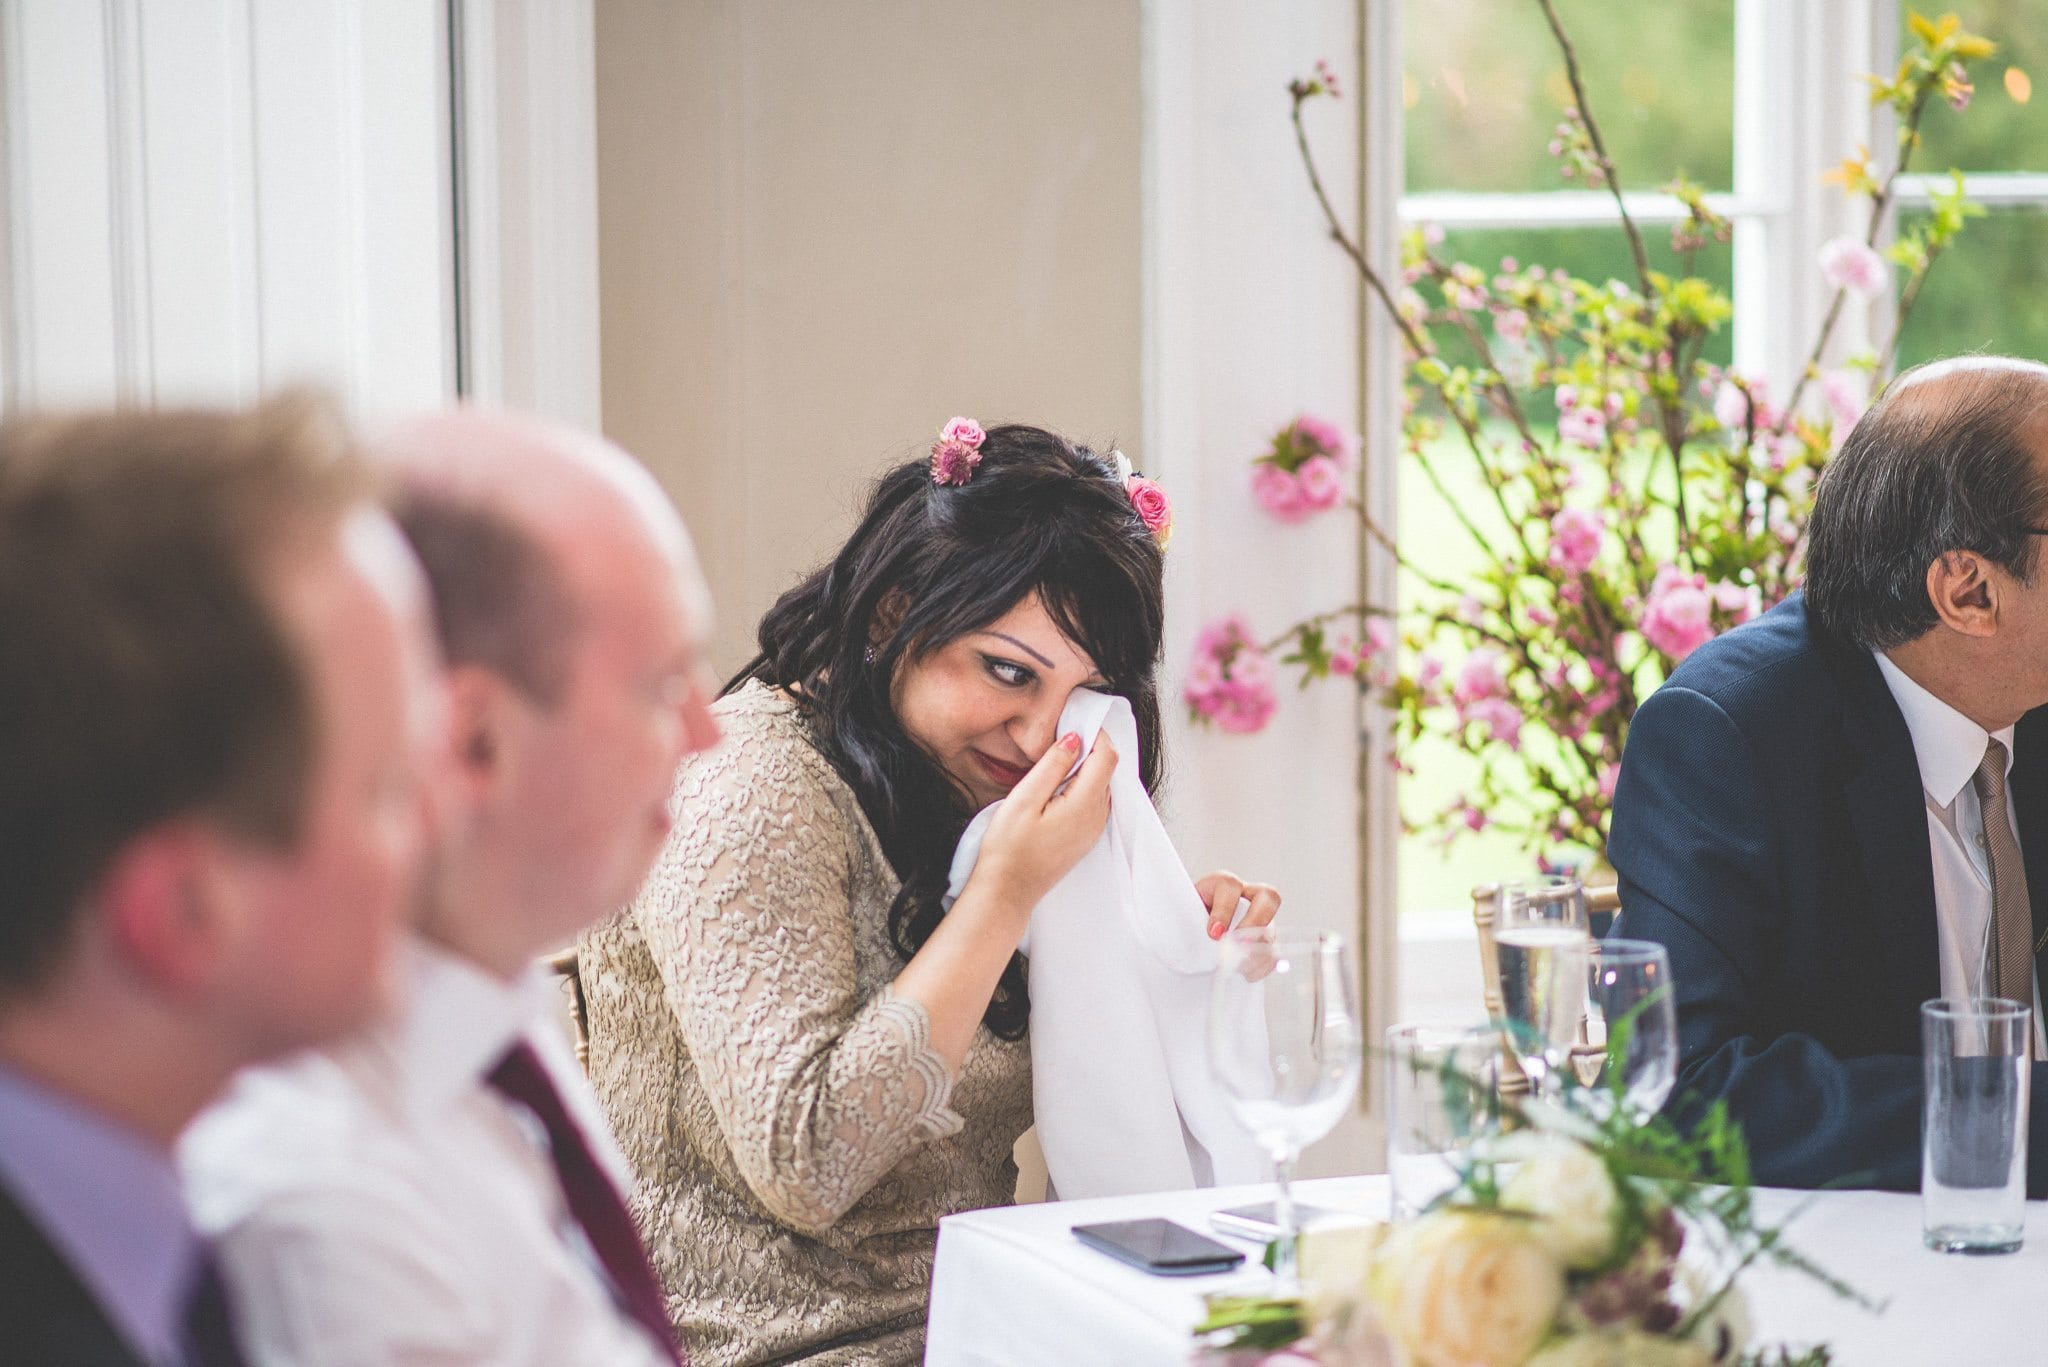 A bridesmaid in a gold dress wipes her eyes with a napkin as things get emotional